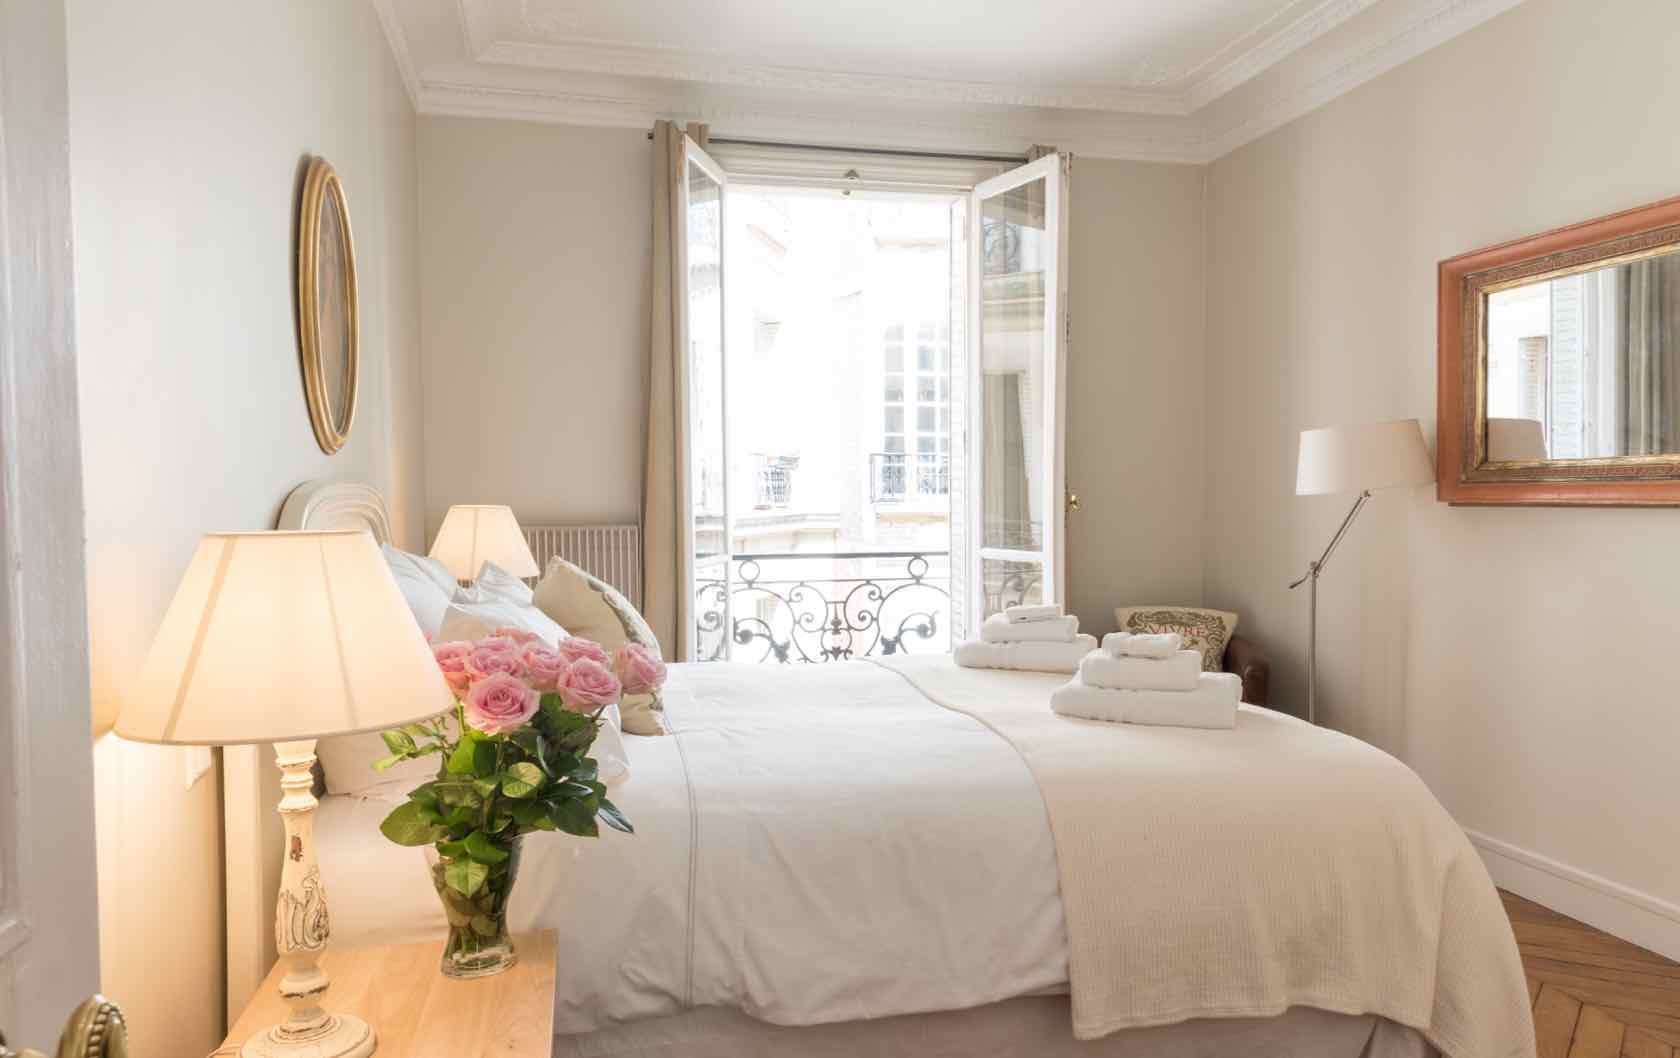 Live Like a Local in the Gamay, a Long-Term Rental in Paris by Paris Perfect master bedroom